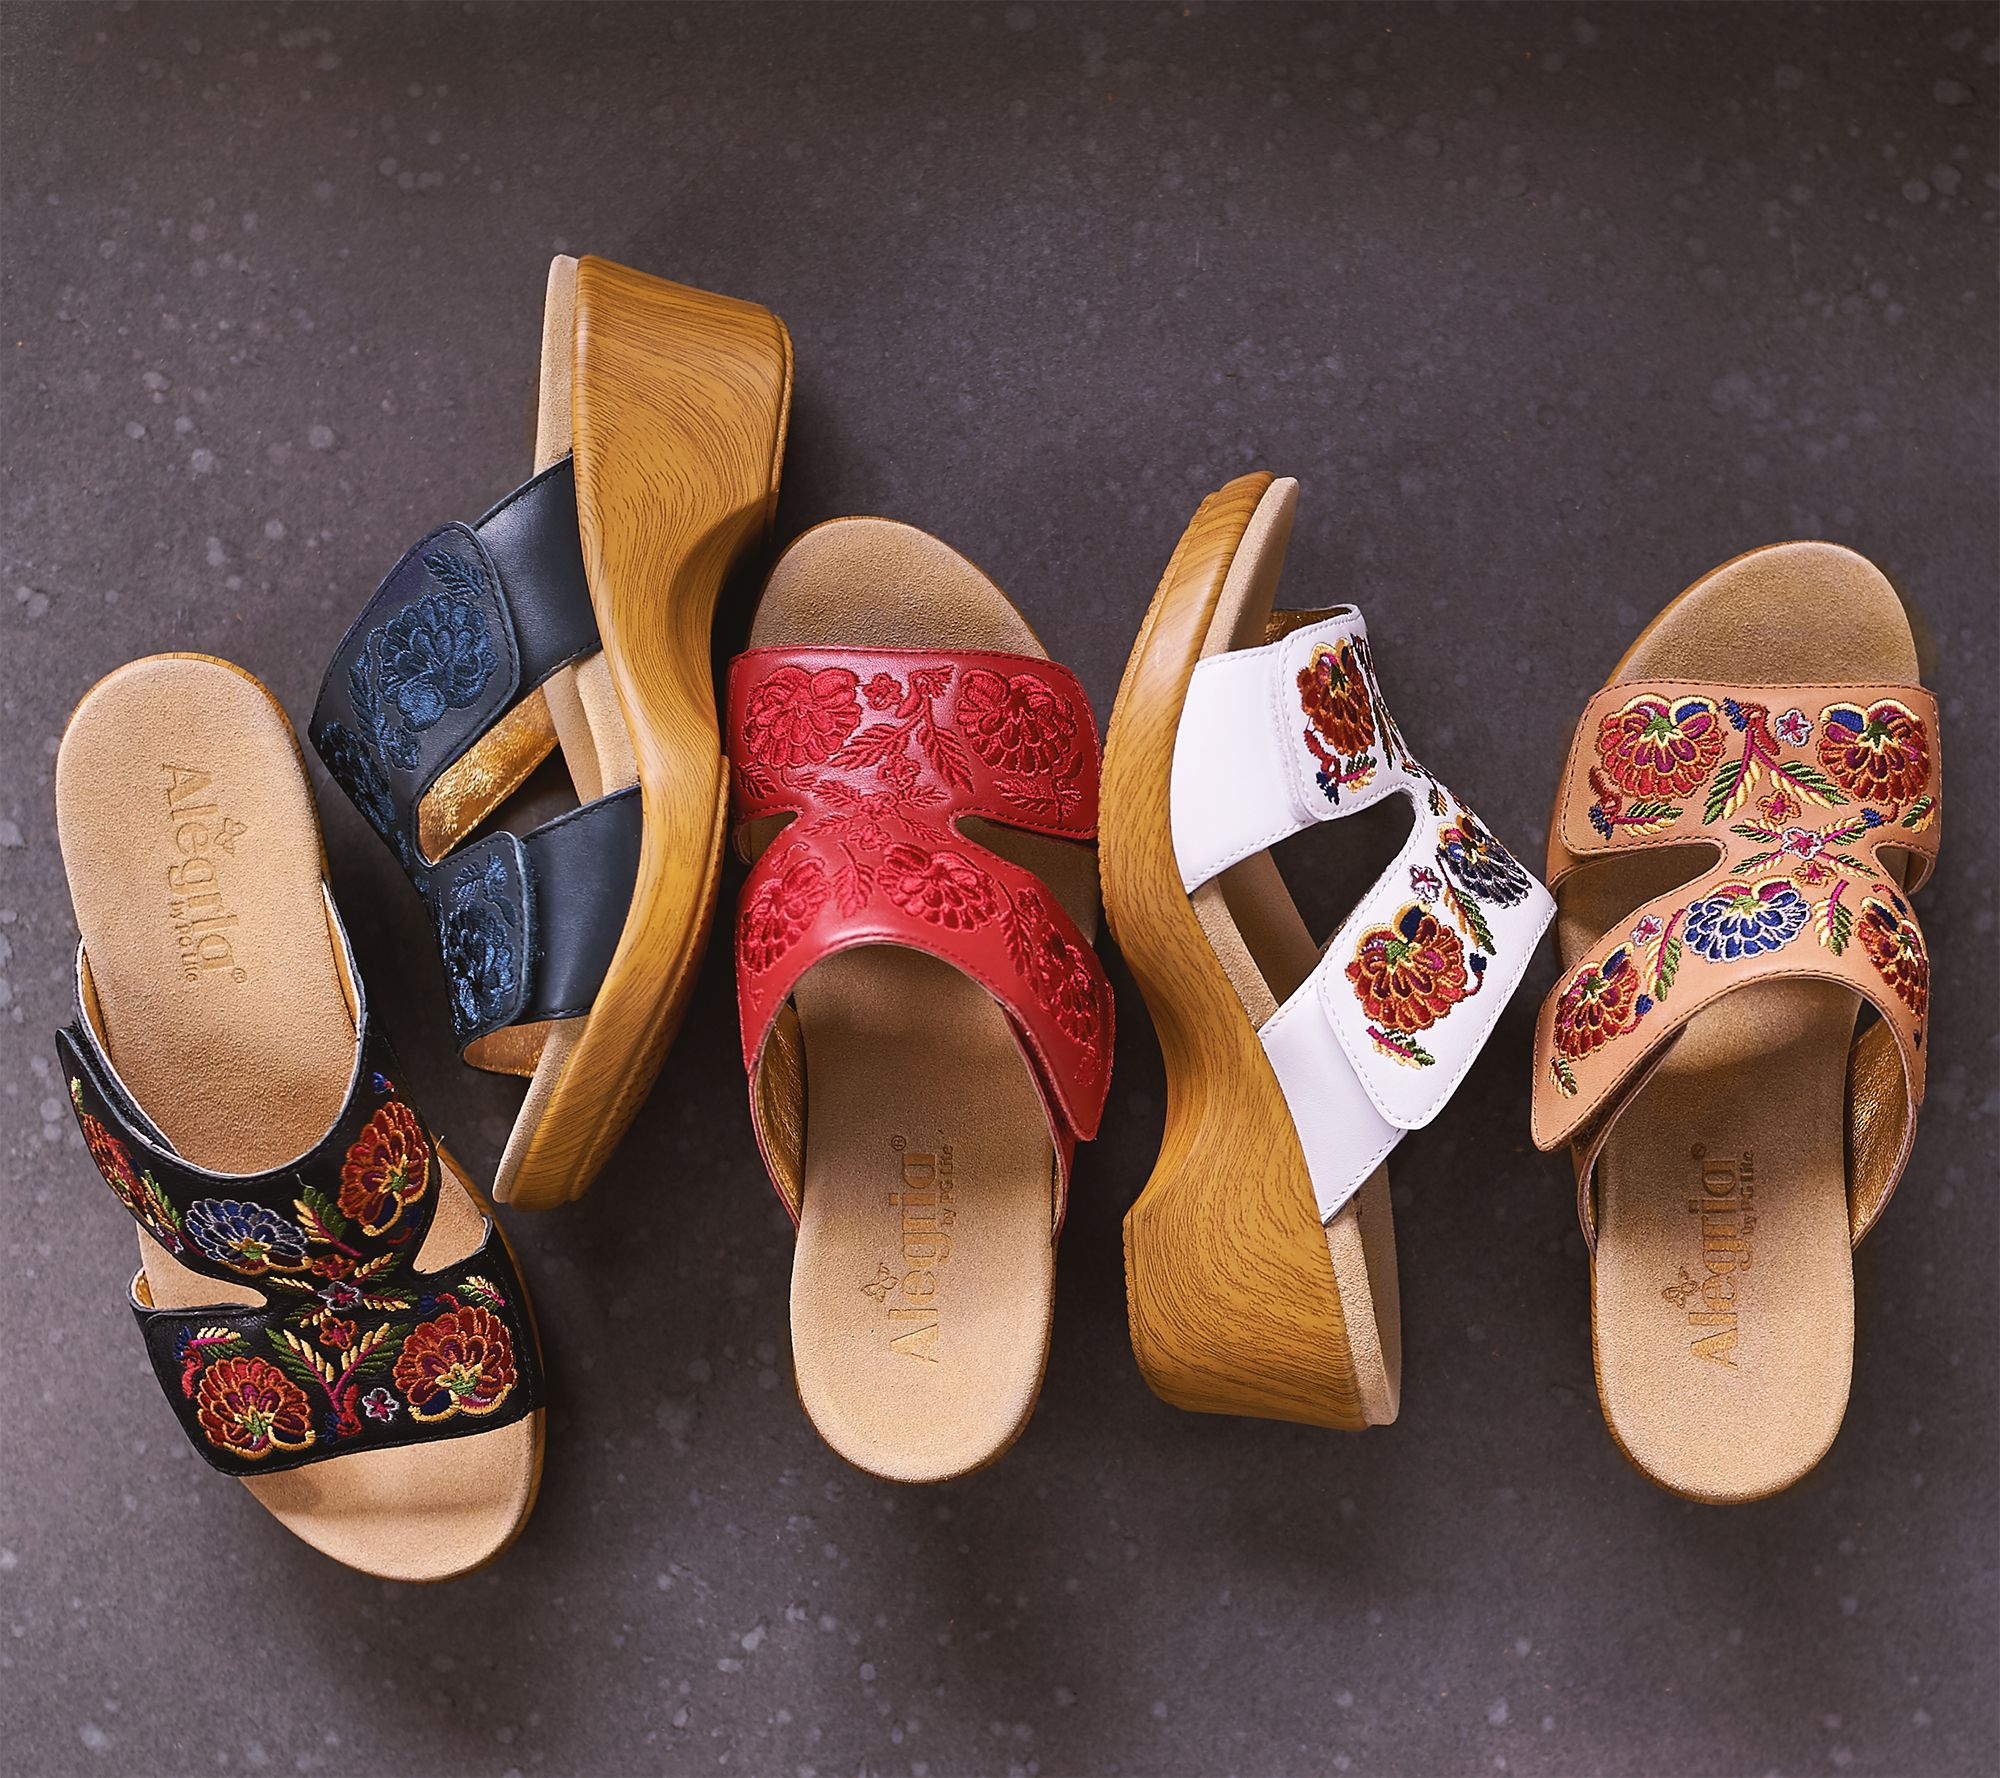 a302d1522b Alegria Embroidered Leather Slip-on Wedge Sandals - Linn - Page 1 — QVC.com